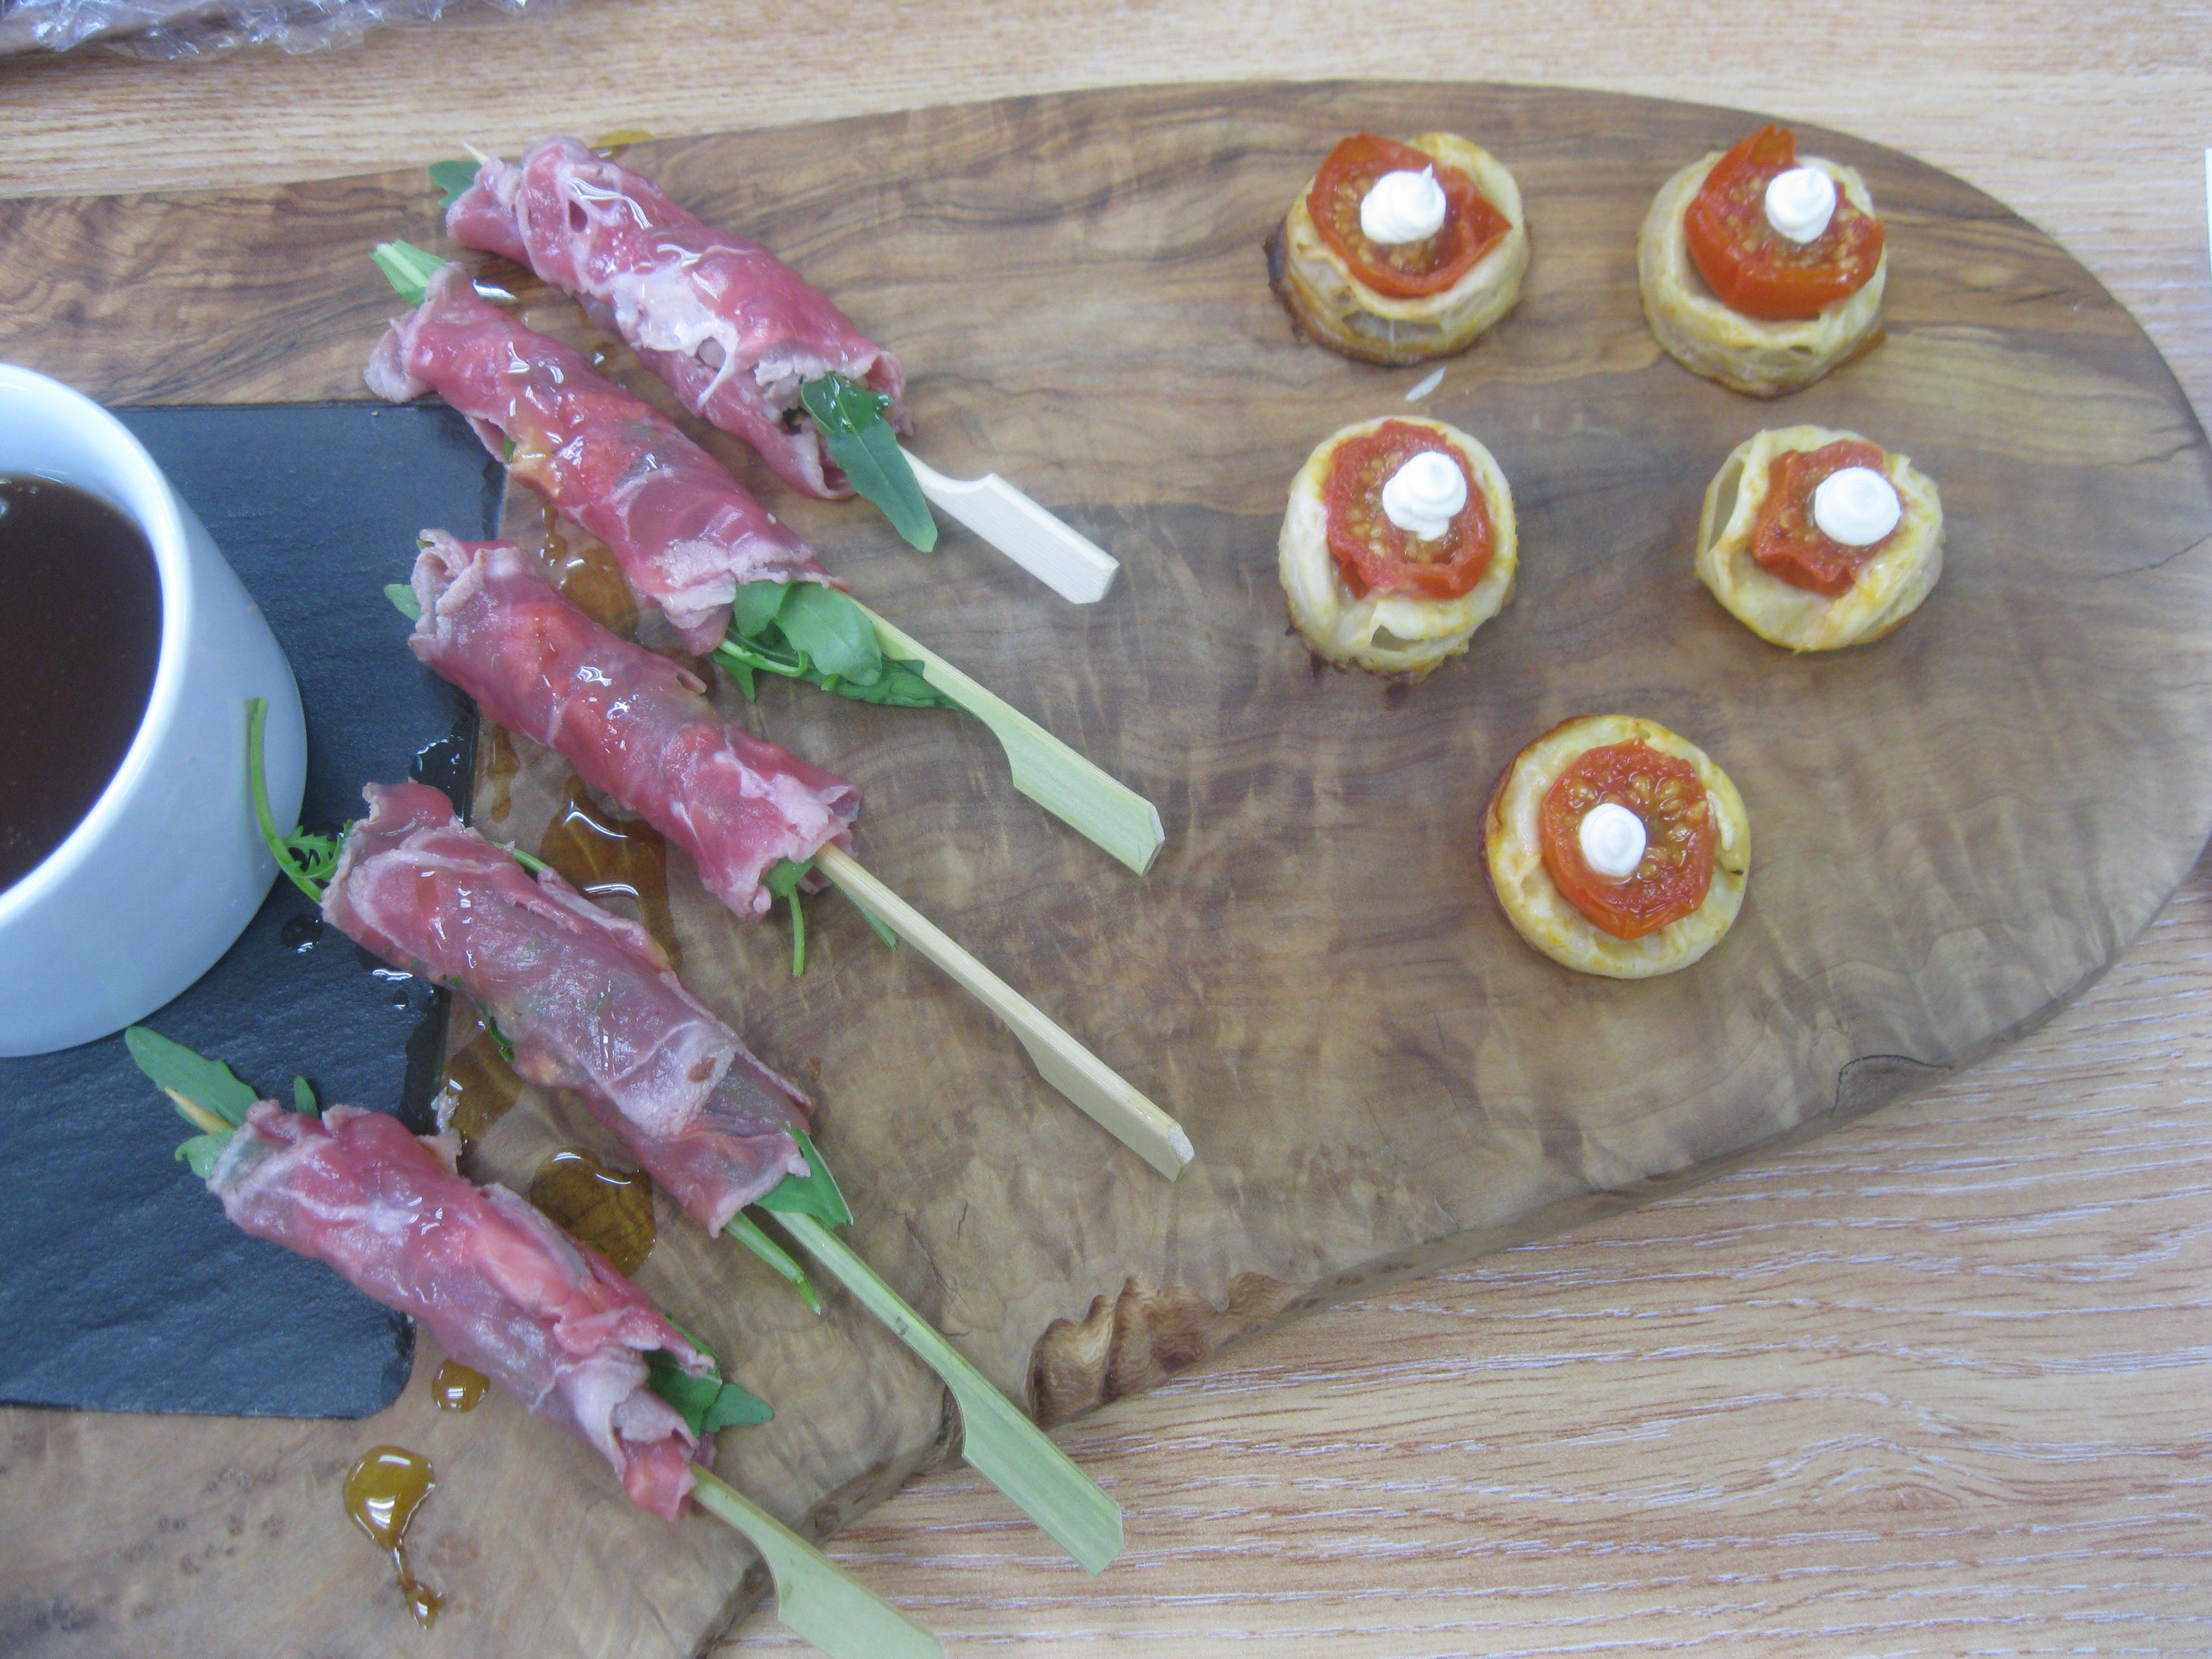 #Food #Presentation #FoodbyDish #LondonCaterers